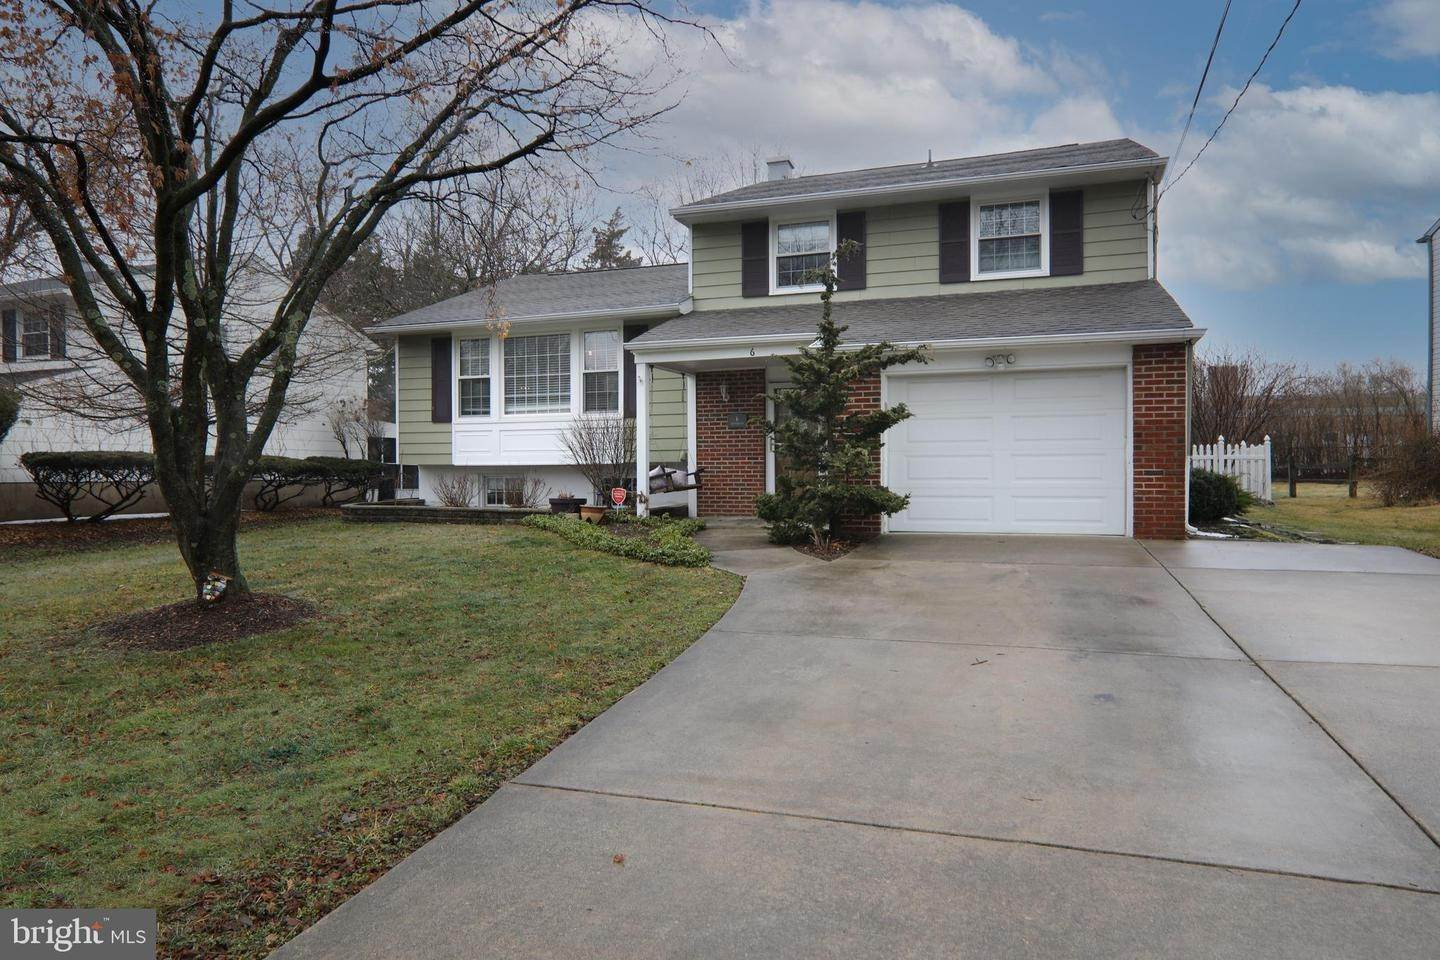 Detached House for Sale at 6 SCATTERGOOD Road Cherry Hill, New Jersey 08003 United States